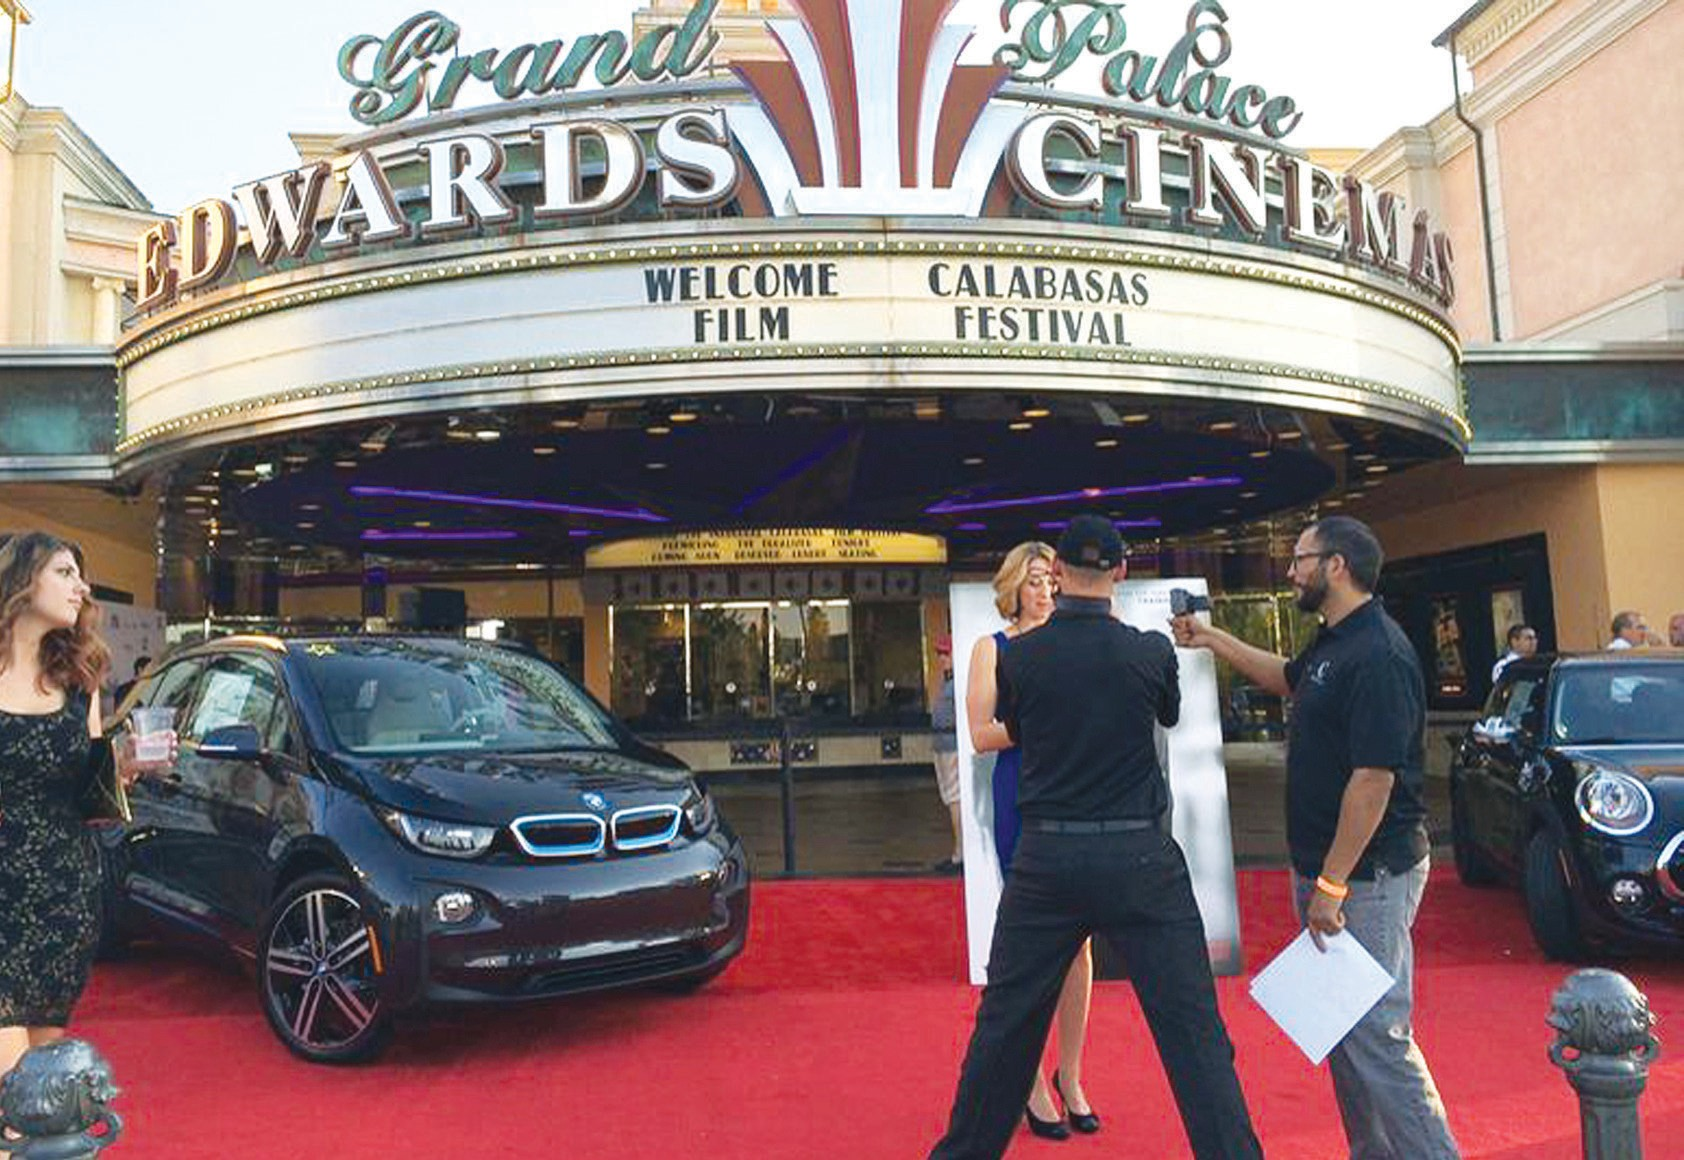 IT'S SHOW TIME—The Edwards Cinema bustles with activity as the curtain goes up on a recent festival. Courtesy of Calabasas Film Festival.